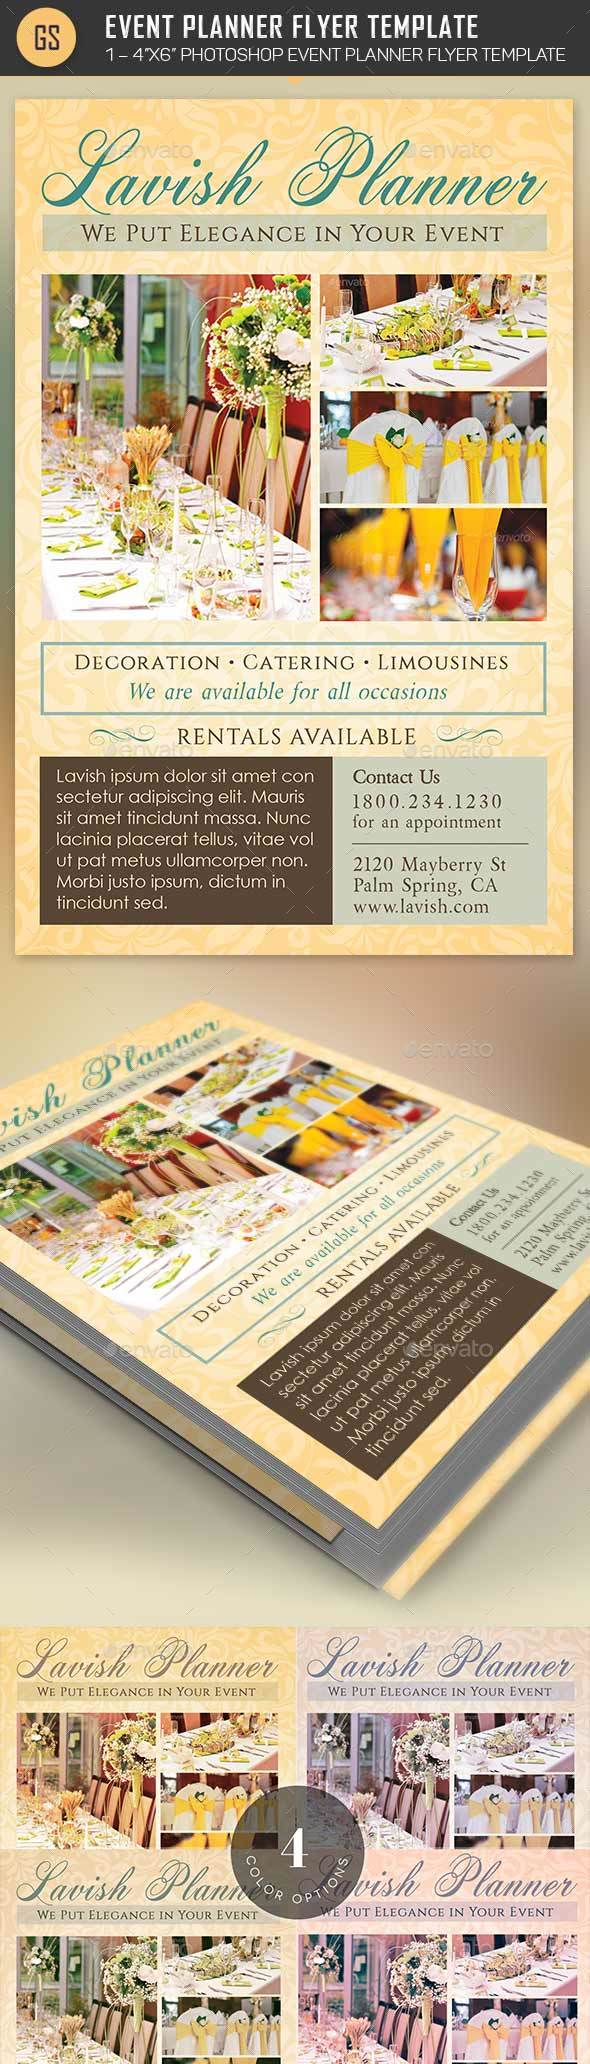 event planner flyer template by godserv2 graphicriver